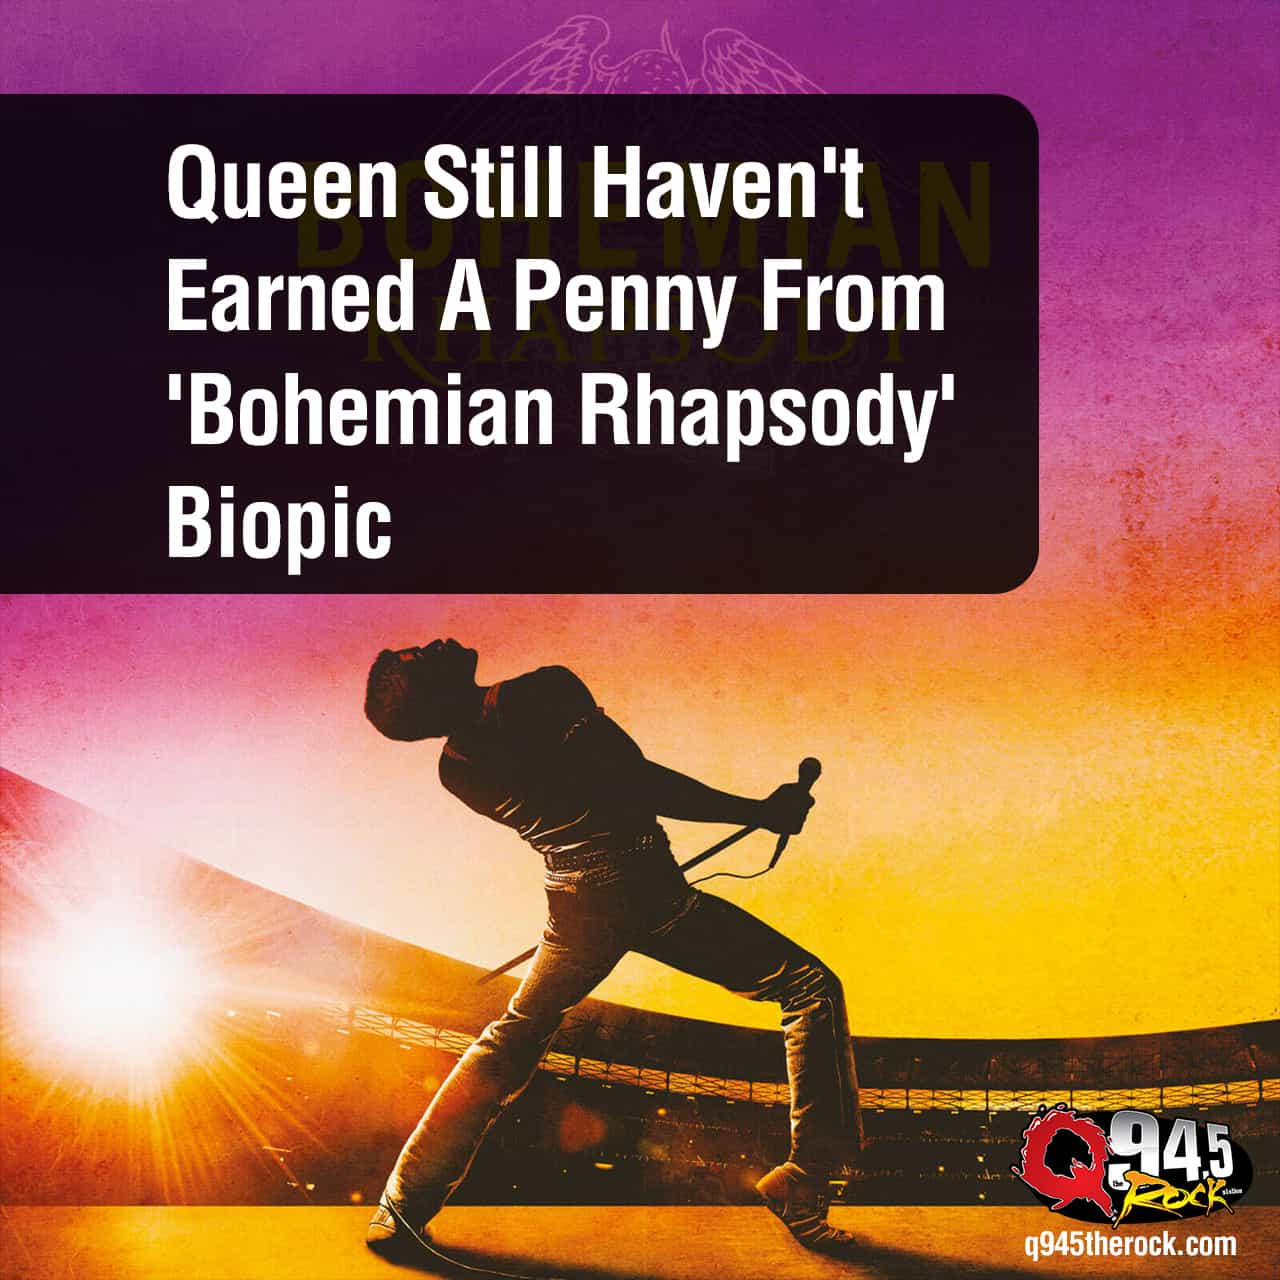 Queen Still Haven't Earned A Penny From 'Bohemian Rhapsody' Biopic